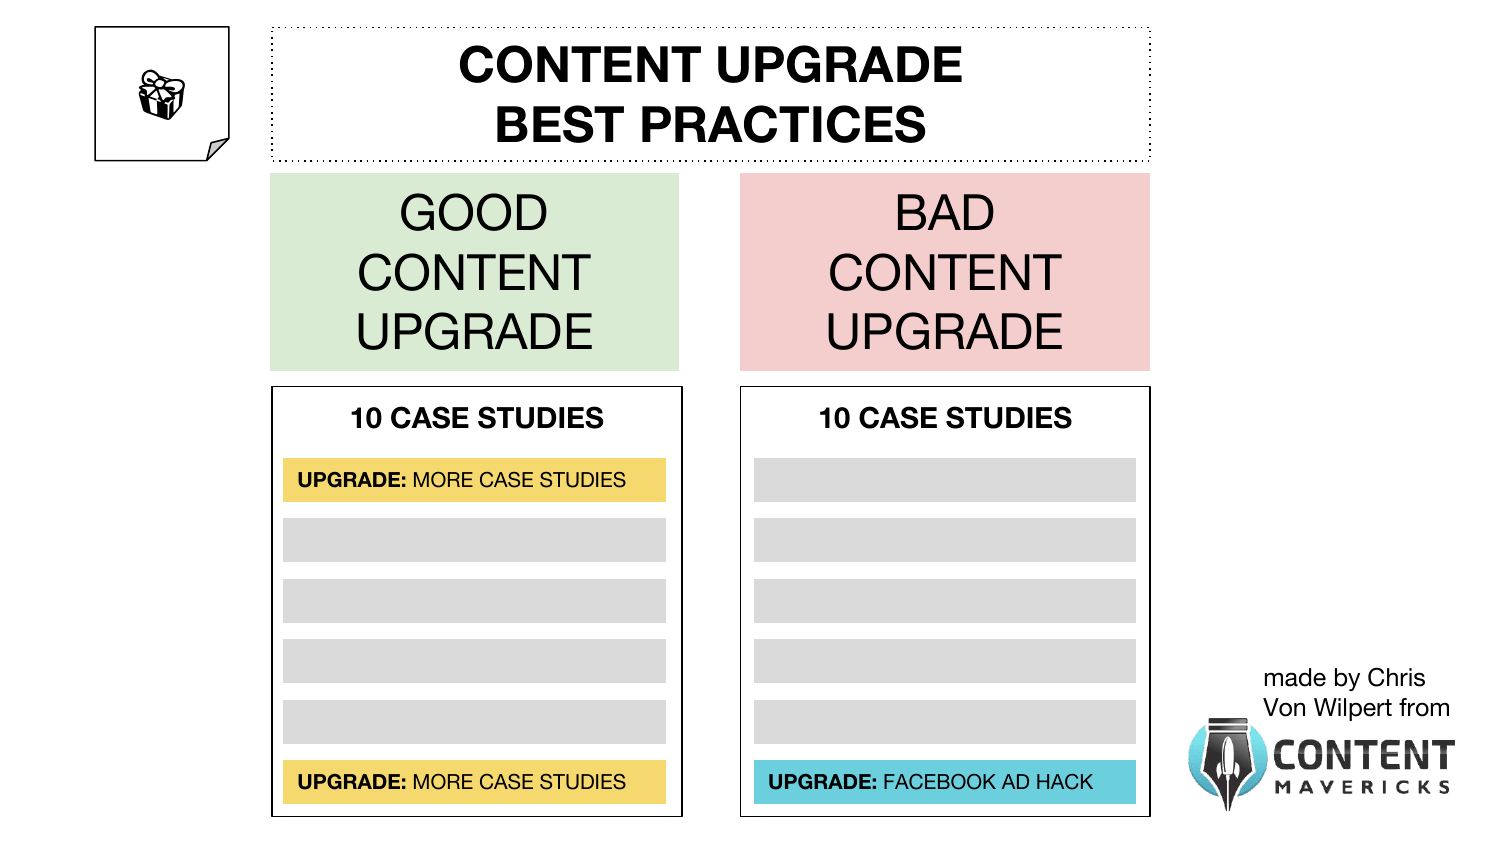 content upgrade content distribution best practices image